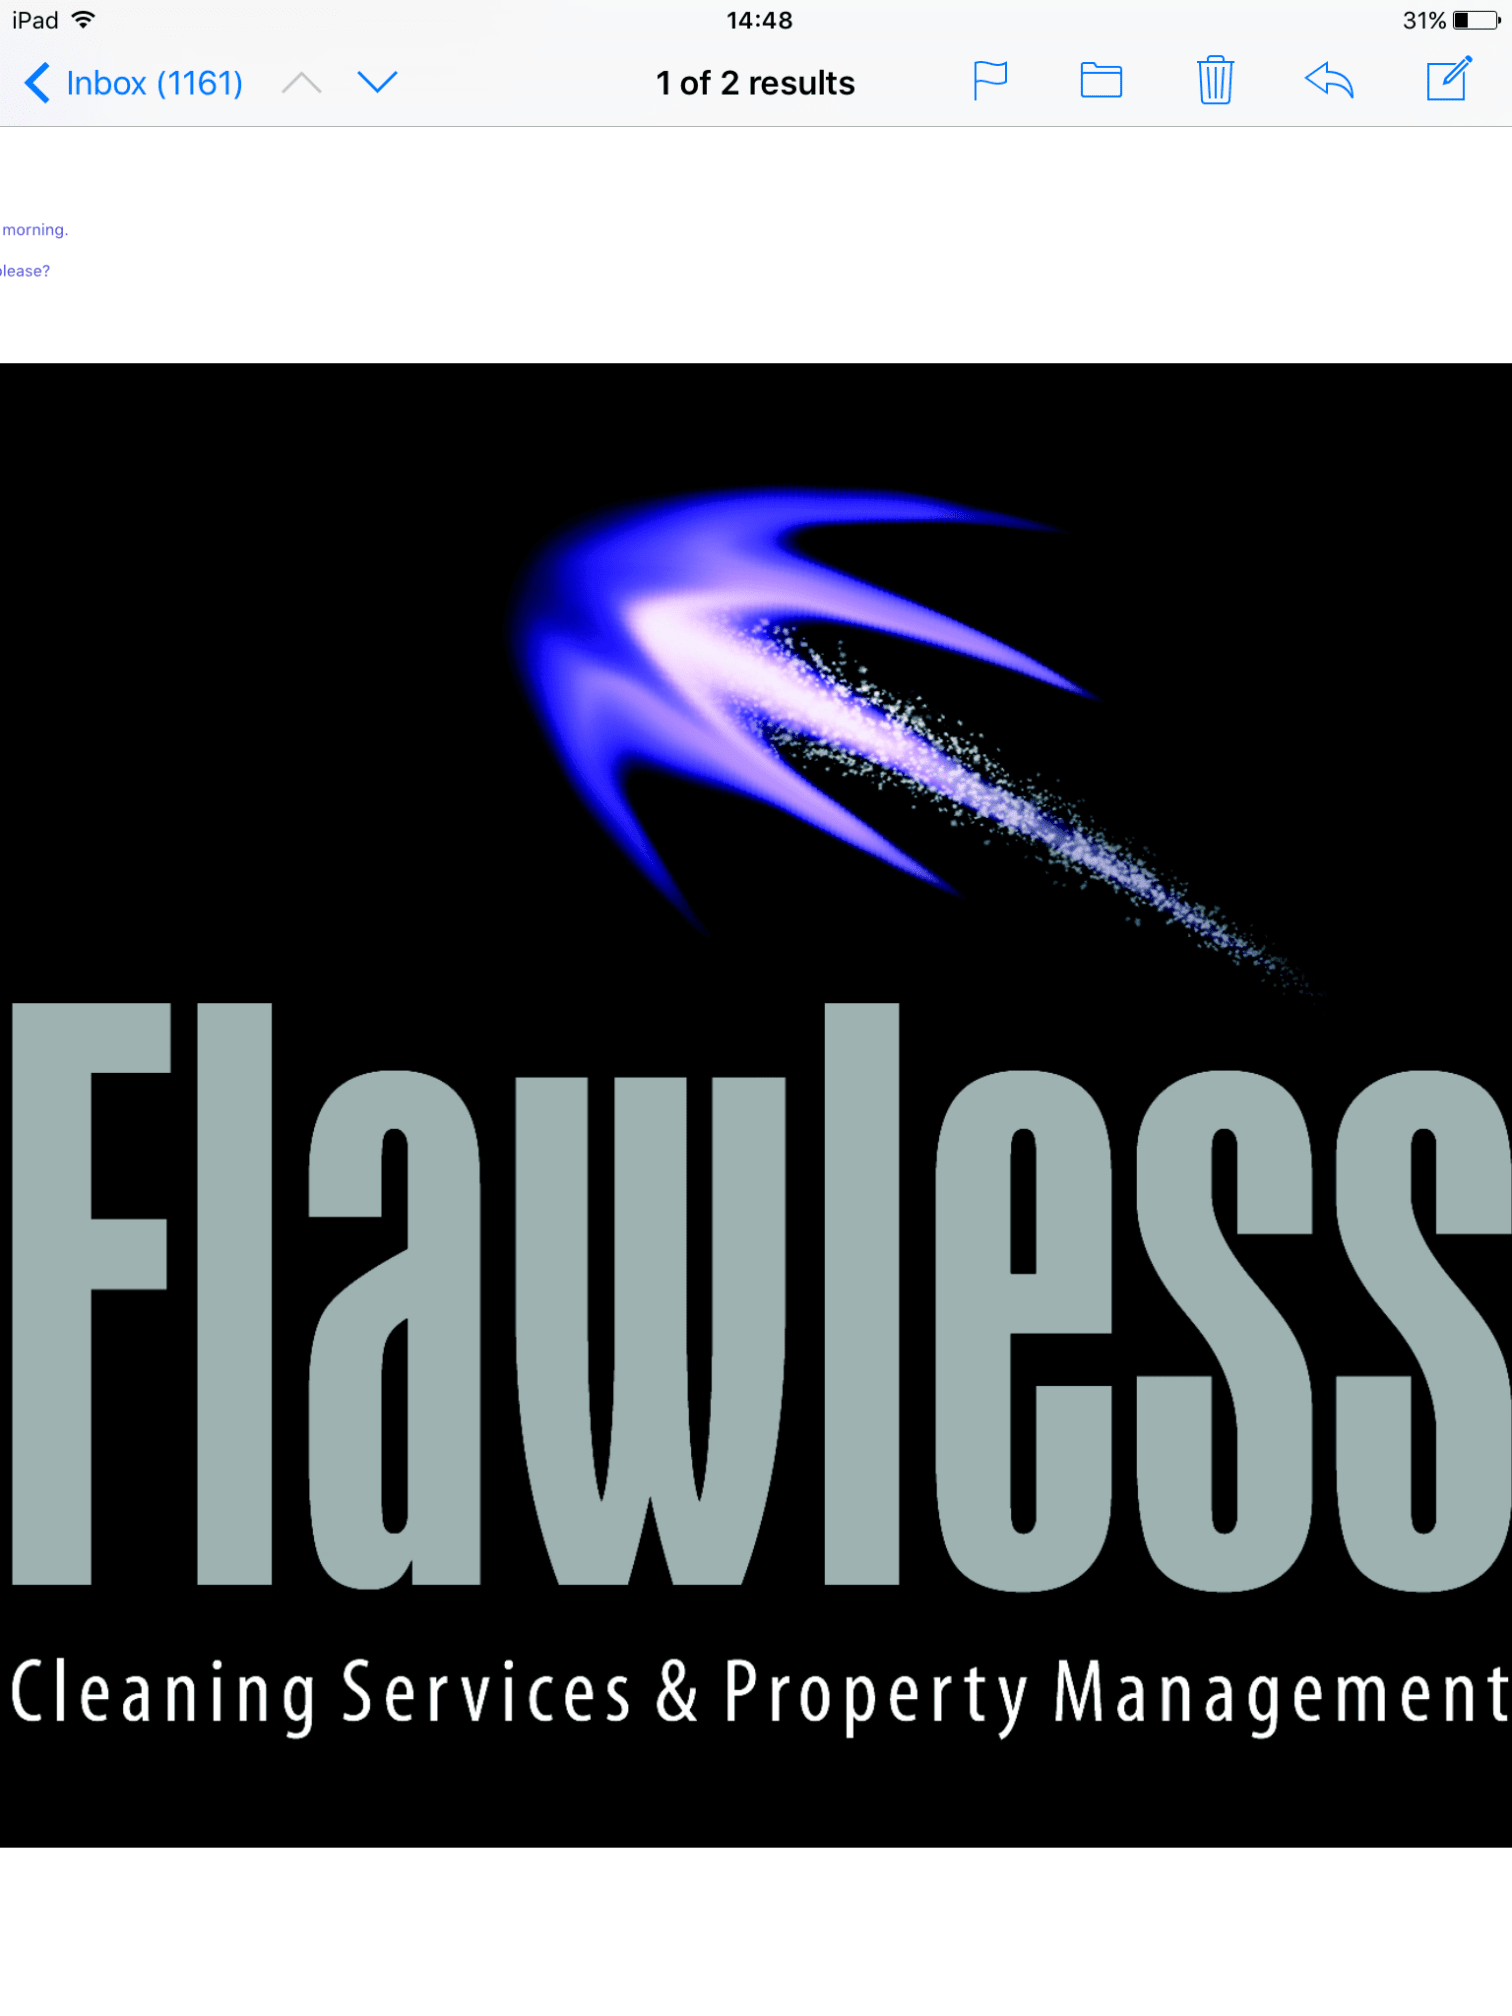 Flawless Cleaning Services And Property Management | 6 Shepherds Hill, Alnmouth NE66 3NG | +44 7563 098637